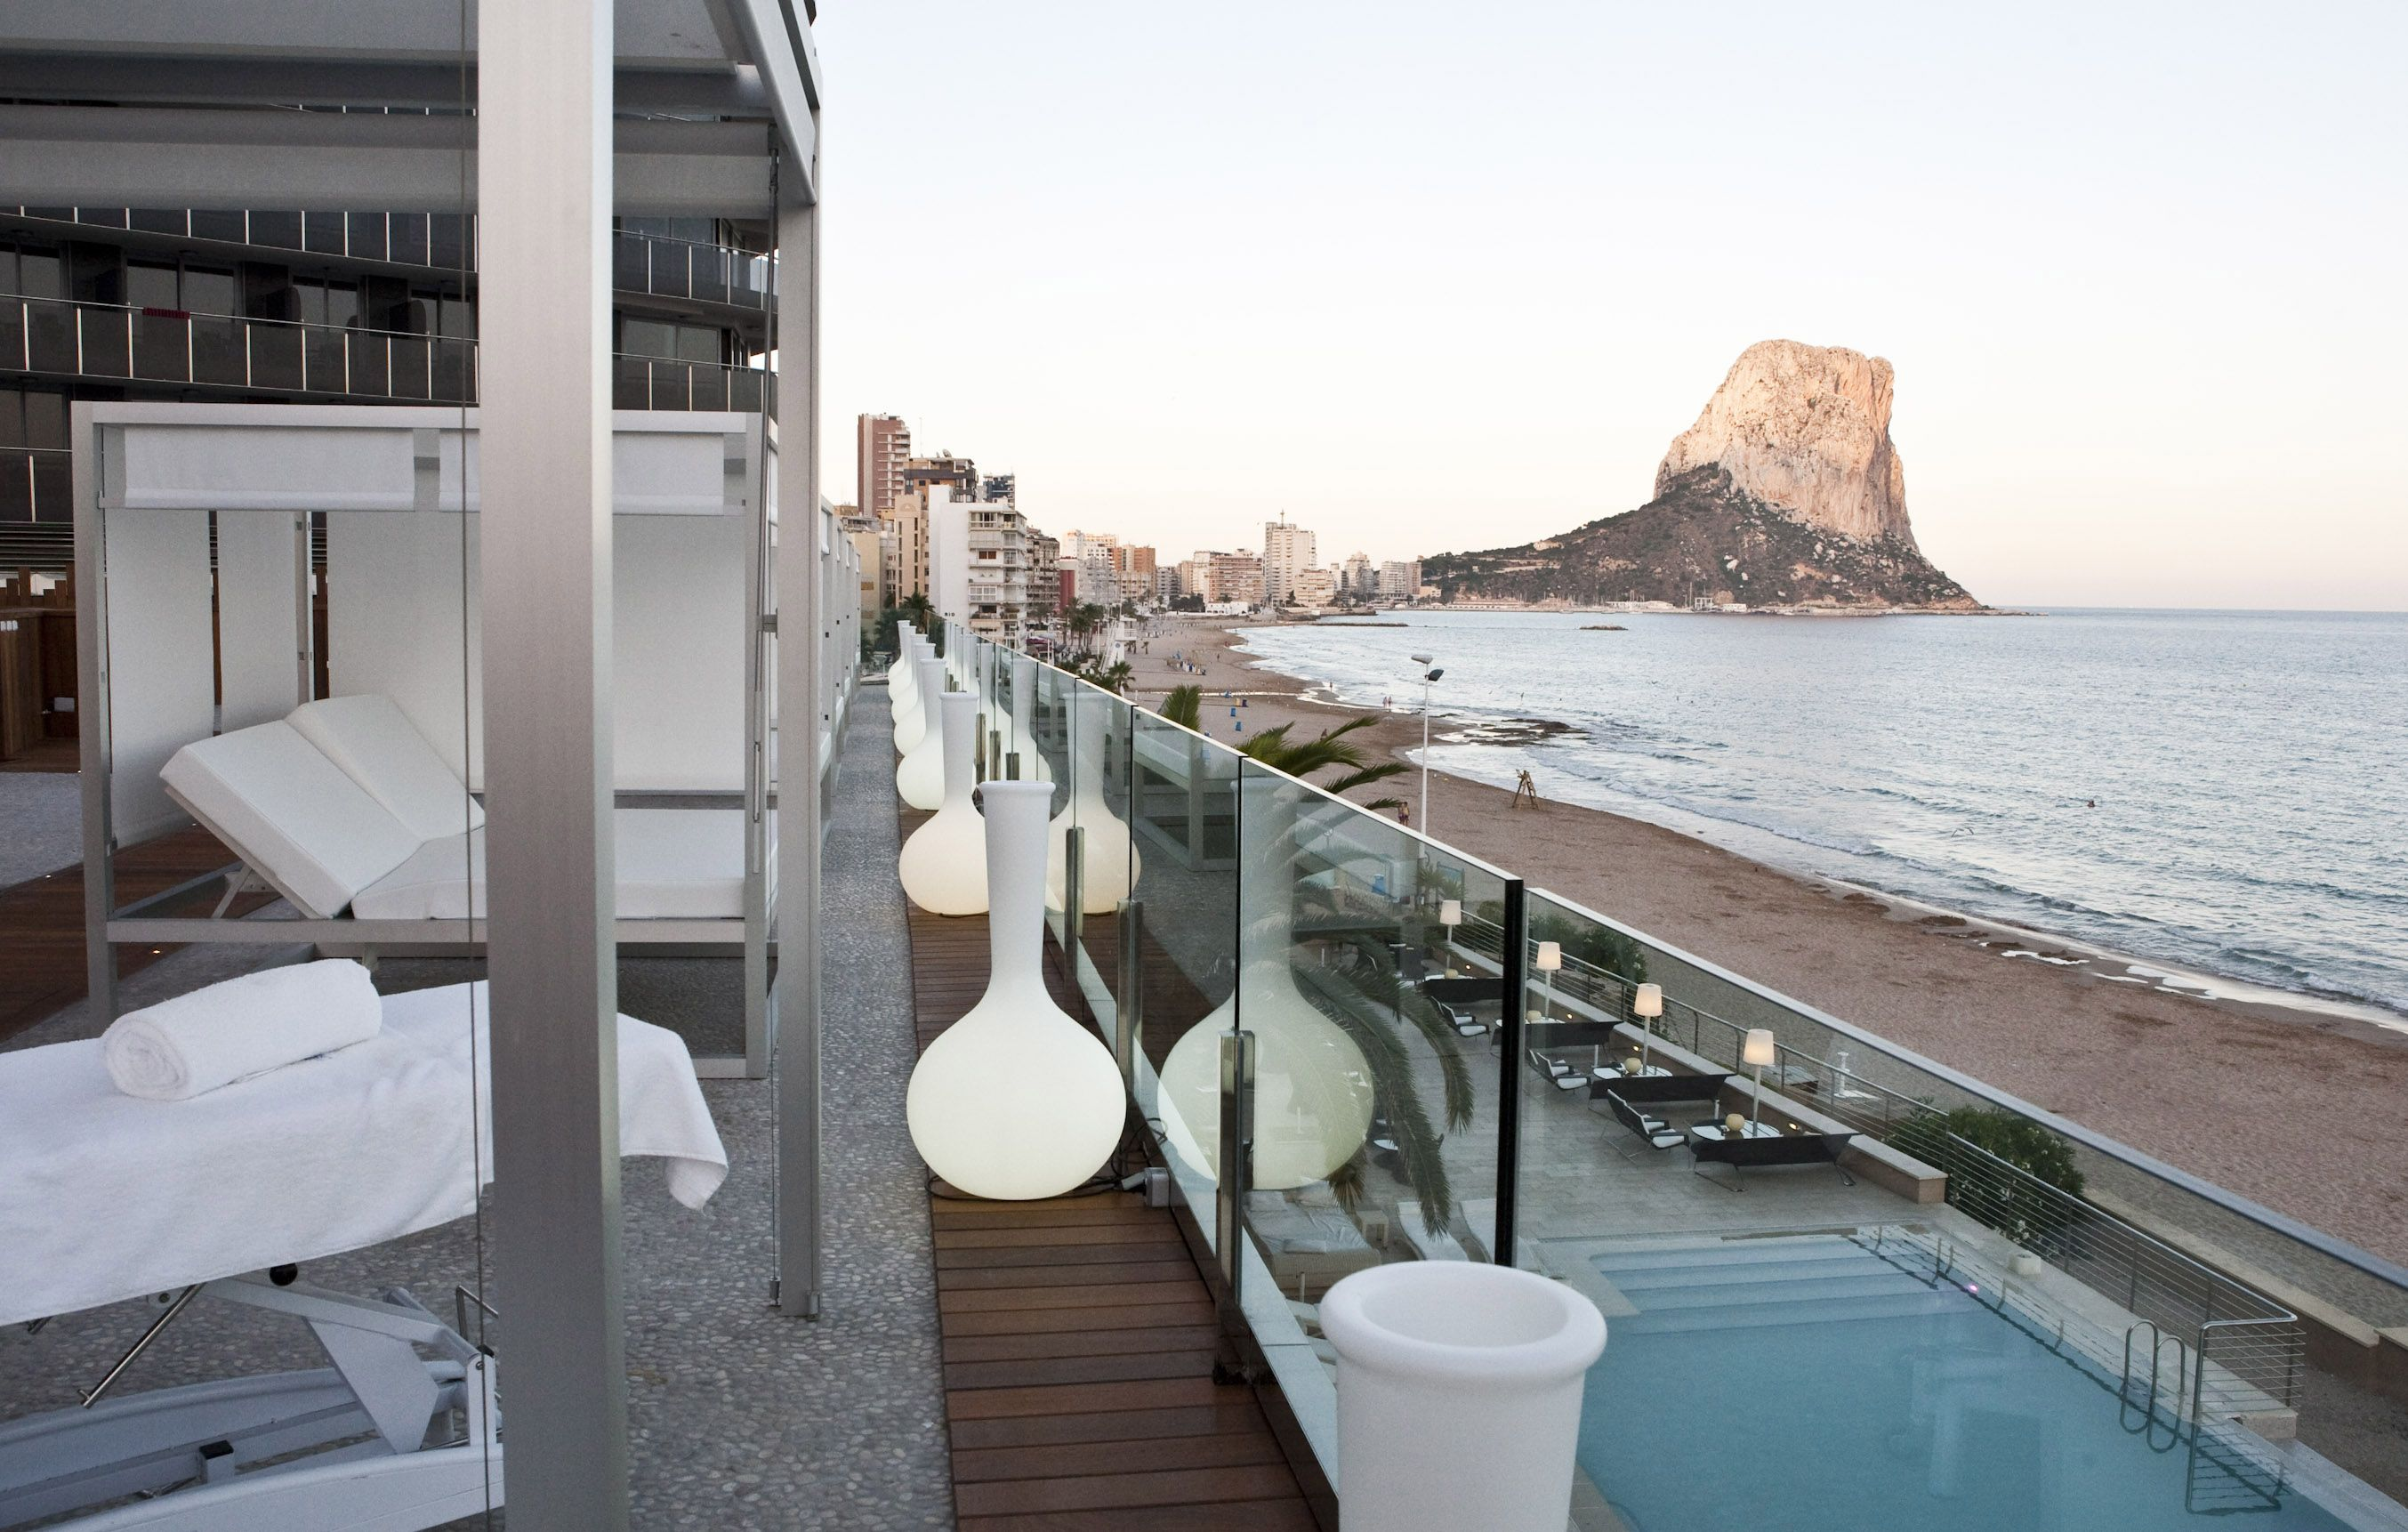 Gran hotel sol y mar calpe alicante spain places and for Hotel diseno alicante